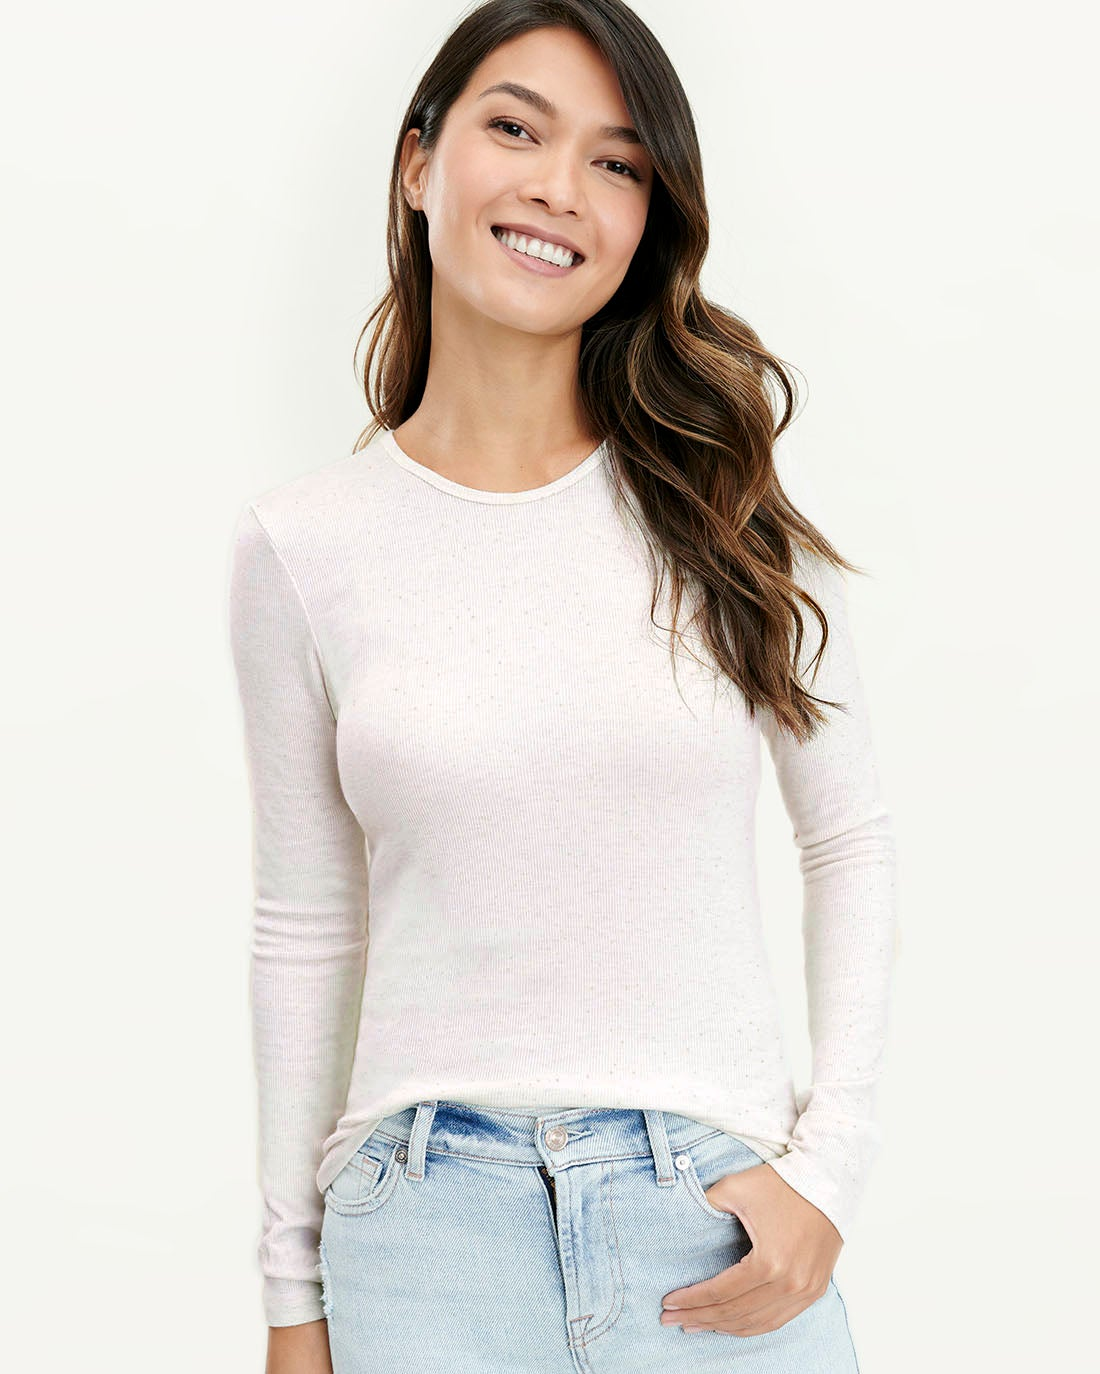 Glimmer Long Sleeve Shirt in Heather Ice